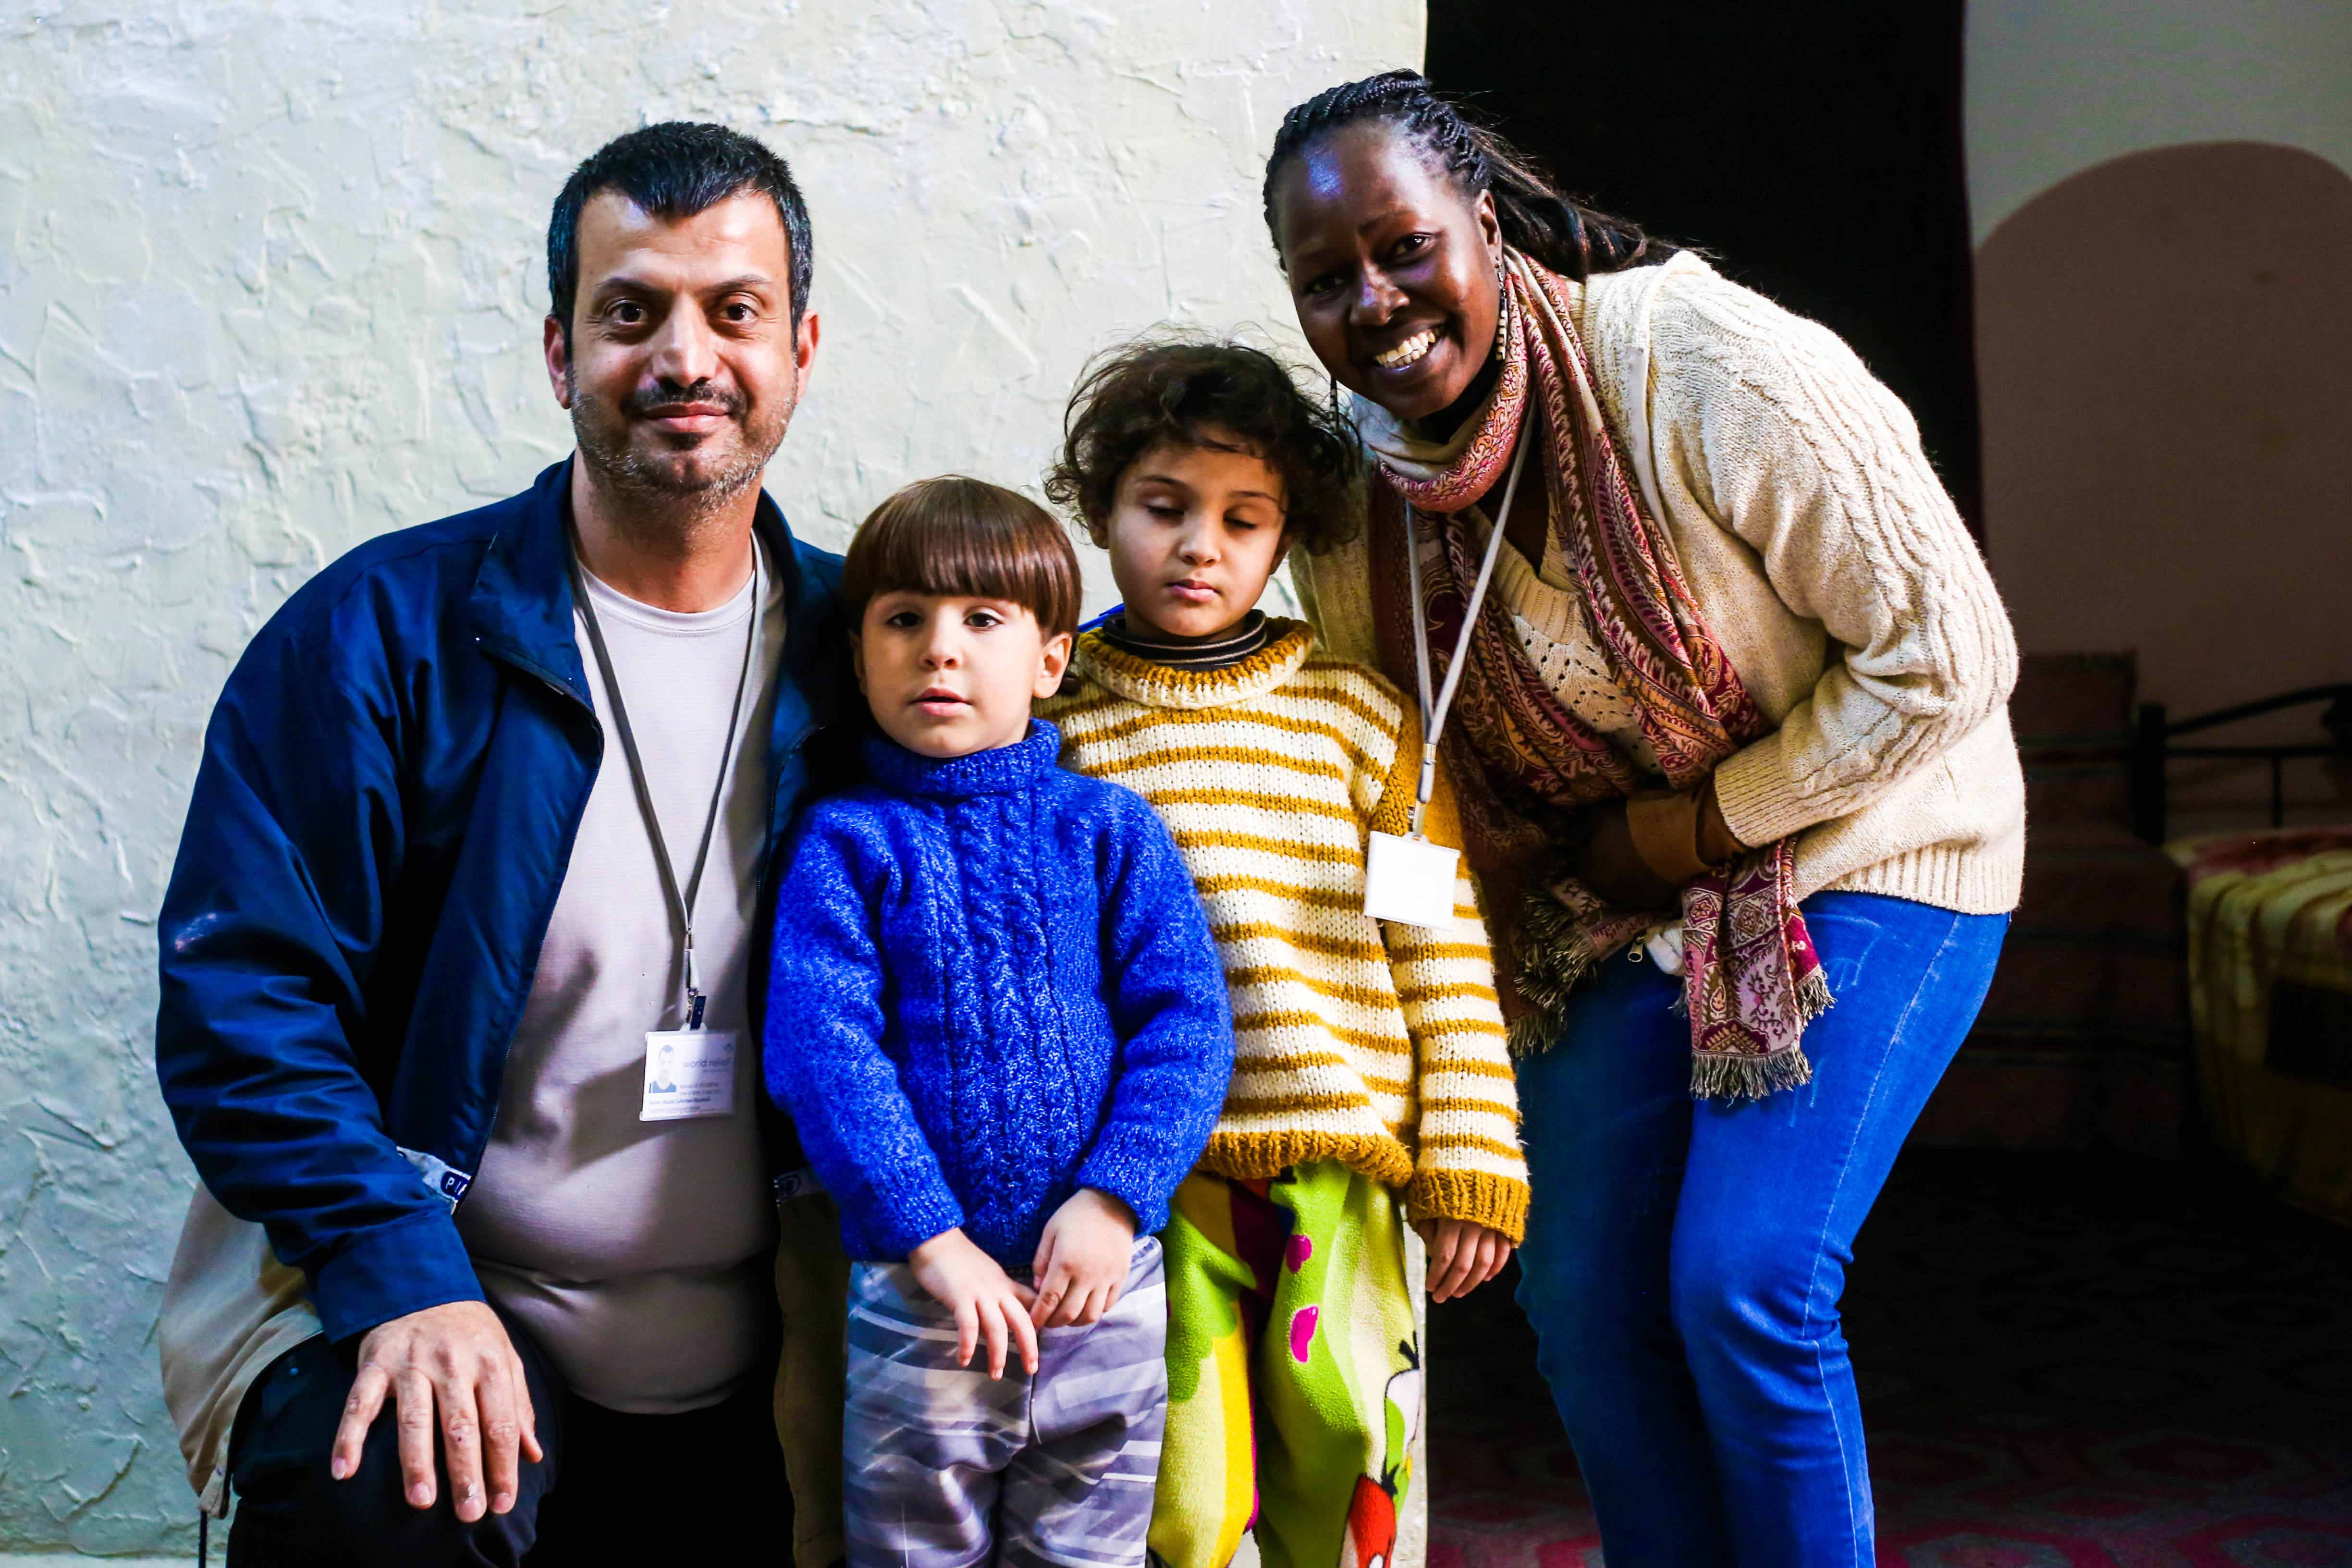 Supporting refugee families in Jordan, focussing especially on helping children